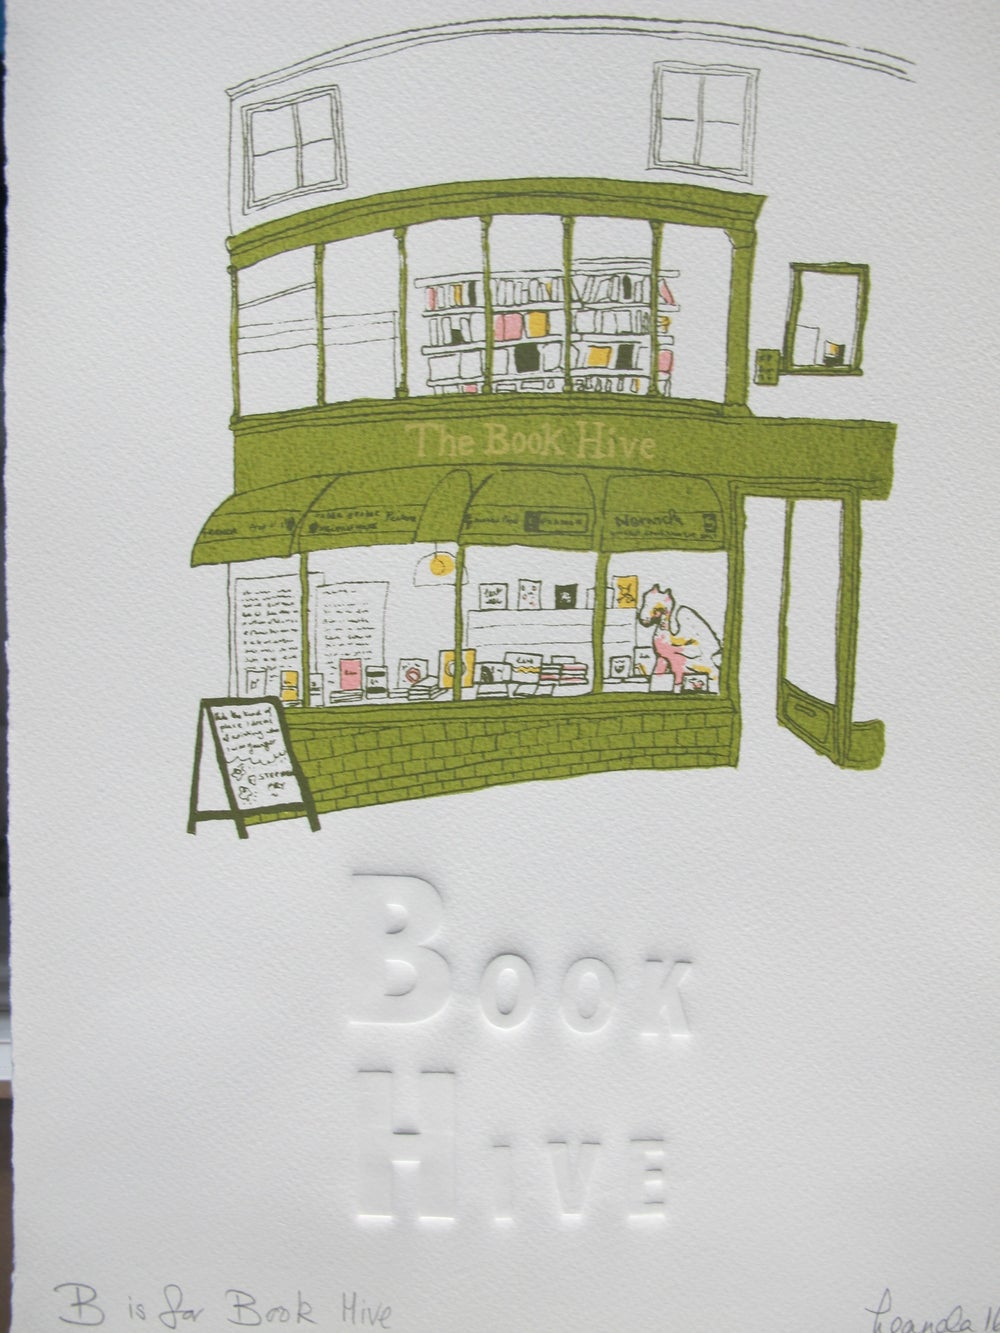 Image of B is for Book Hive